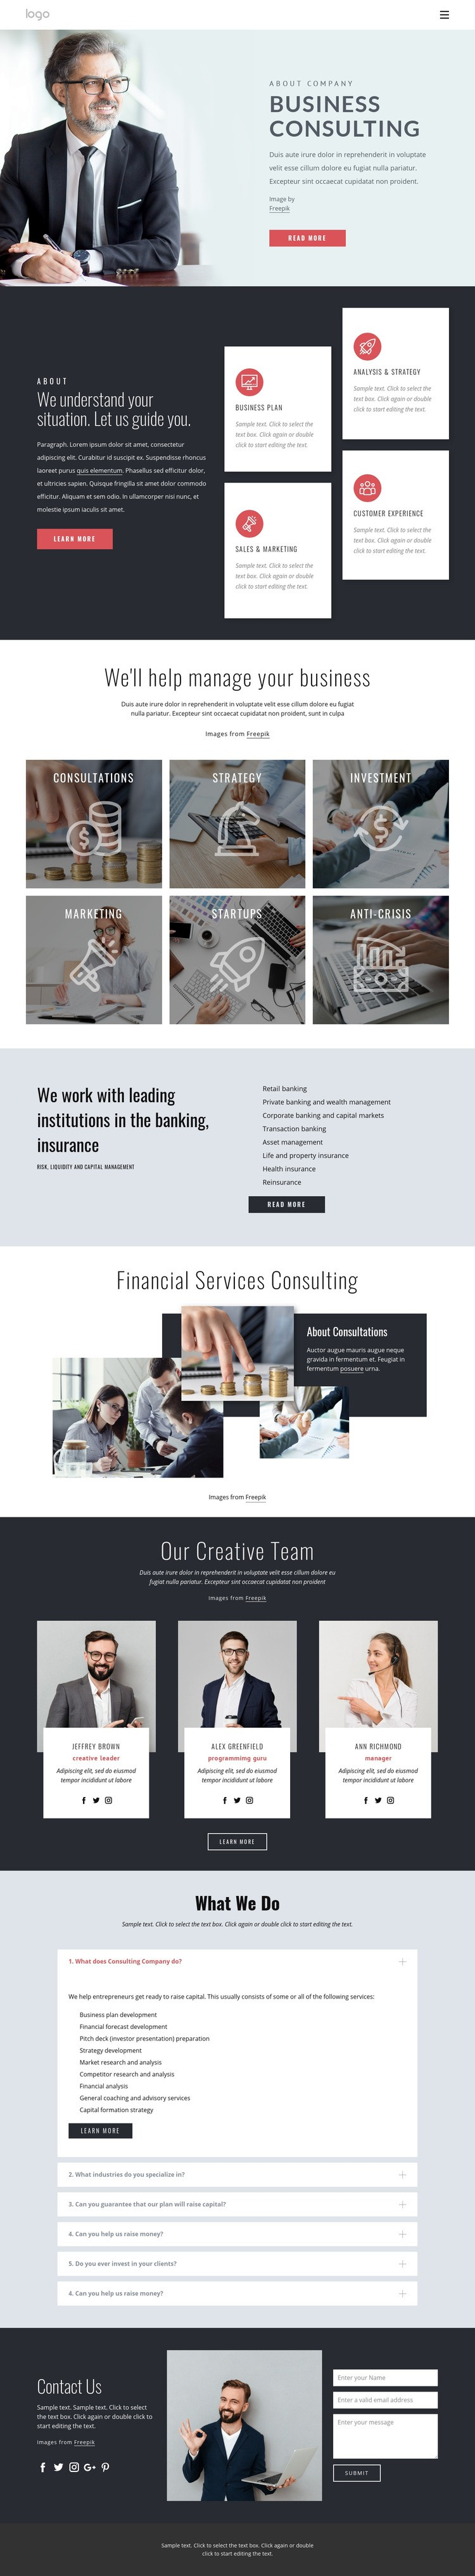 Successful financial strategy Web Page Designer